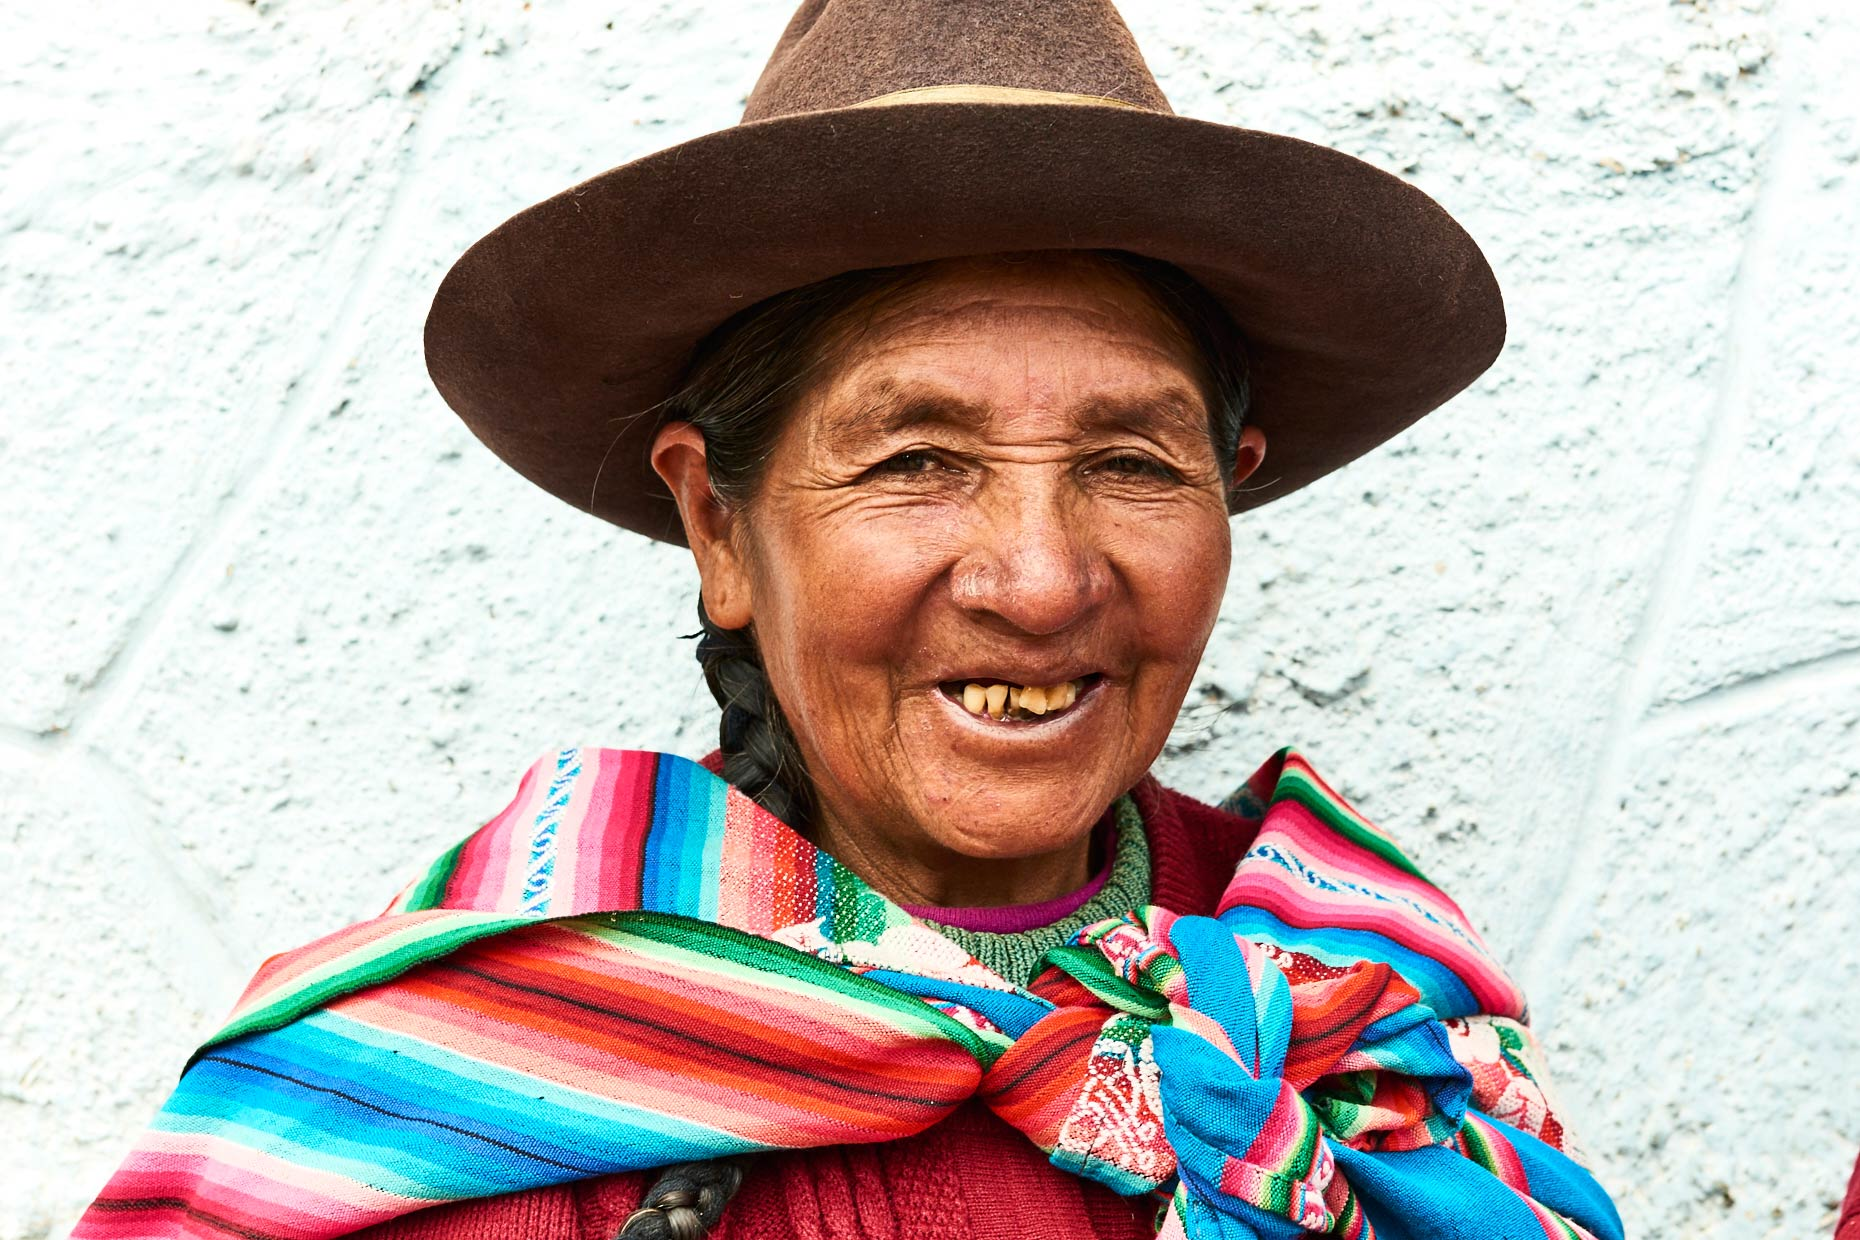 Local-Peruvian-woman-in-tall-hat-and-colorful-clothing-attire